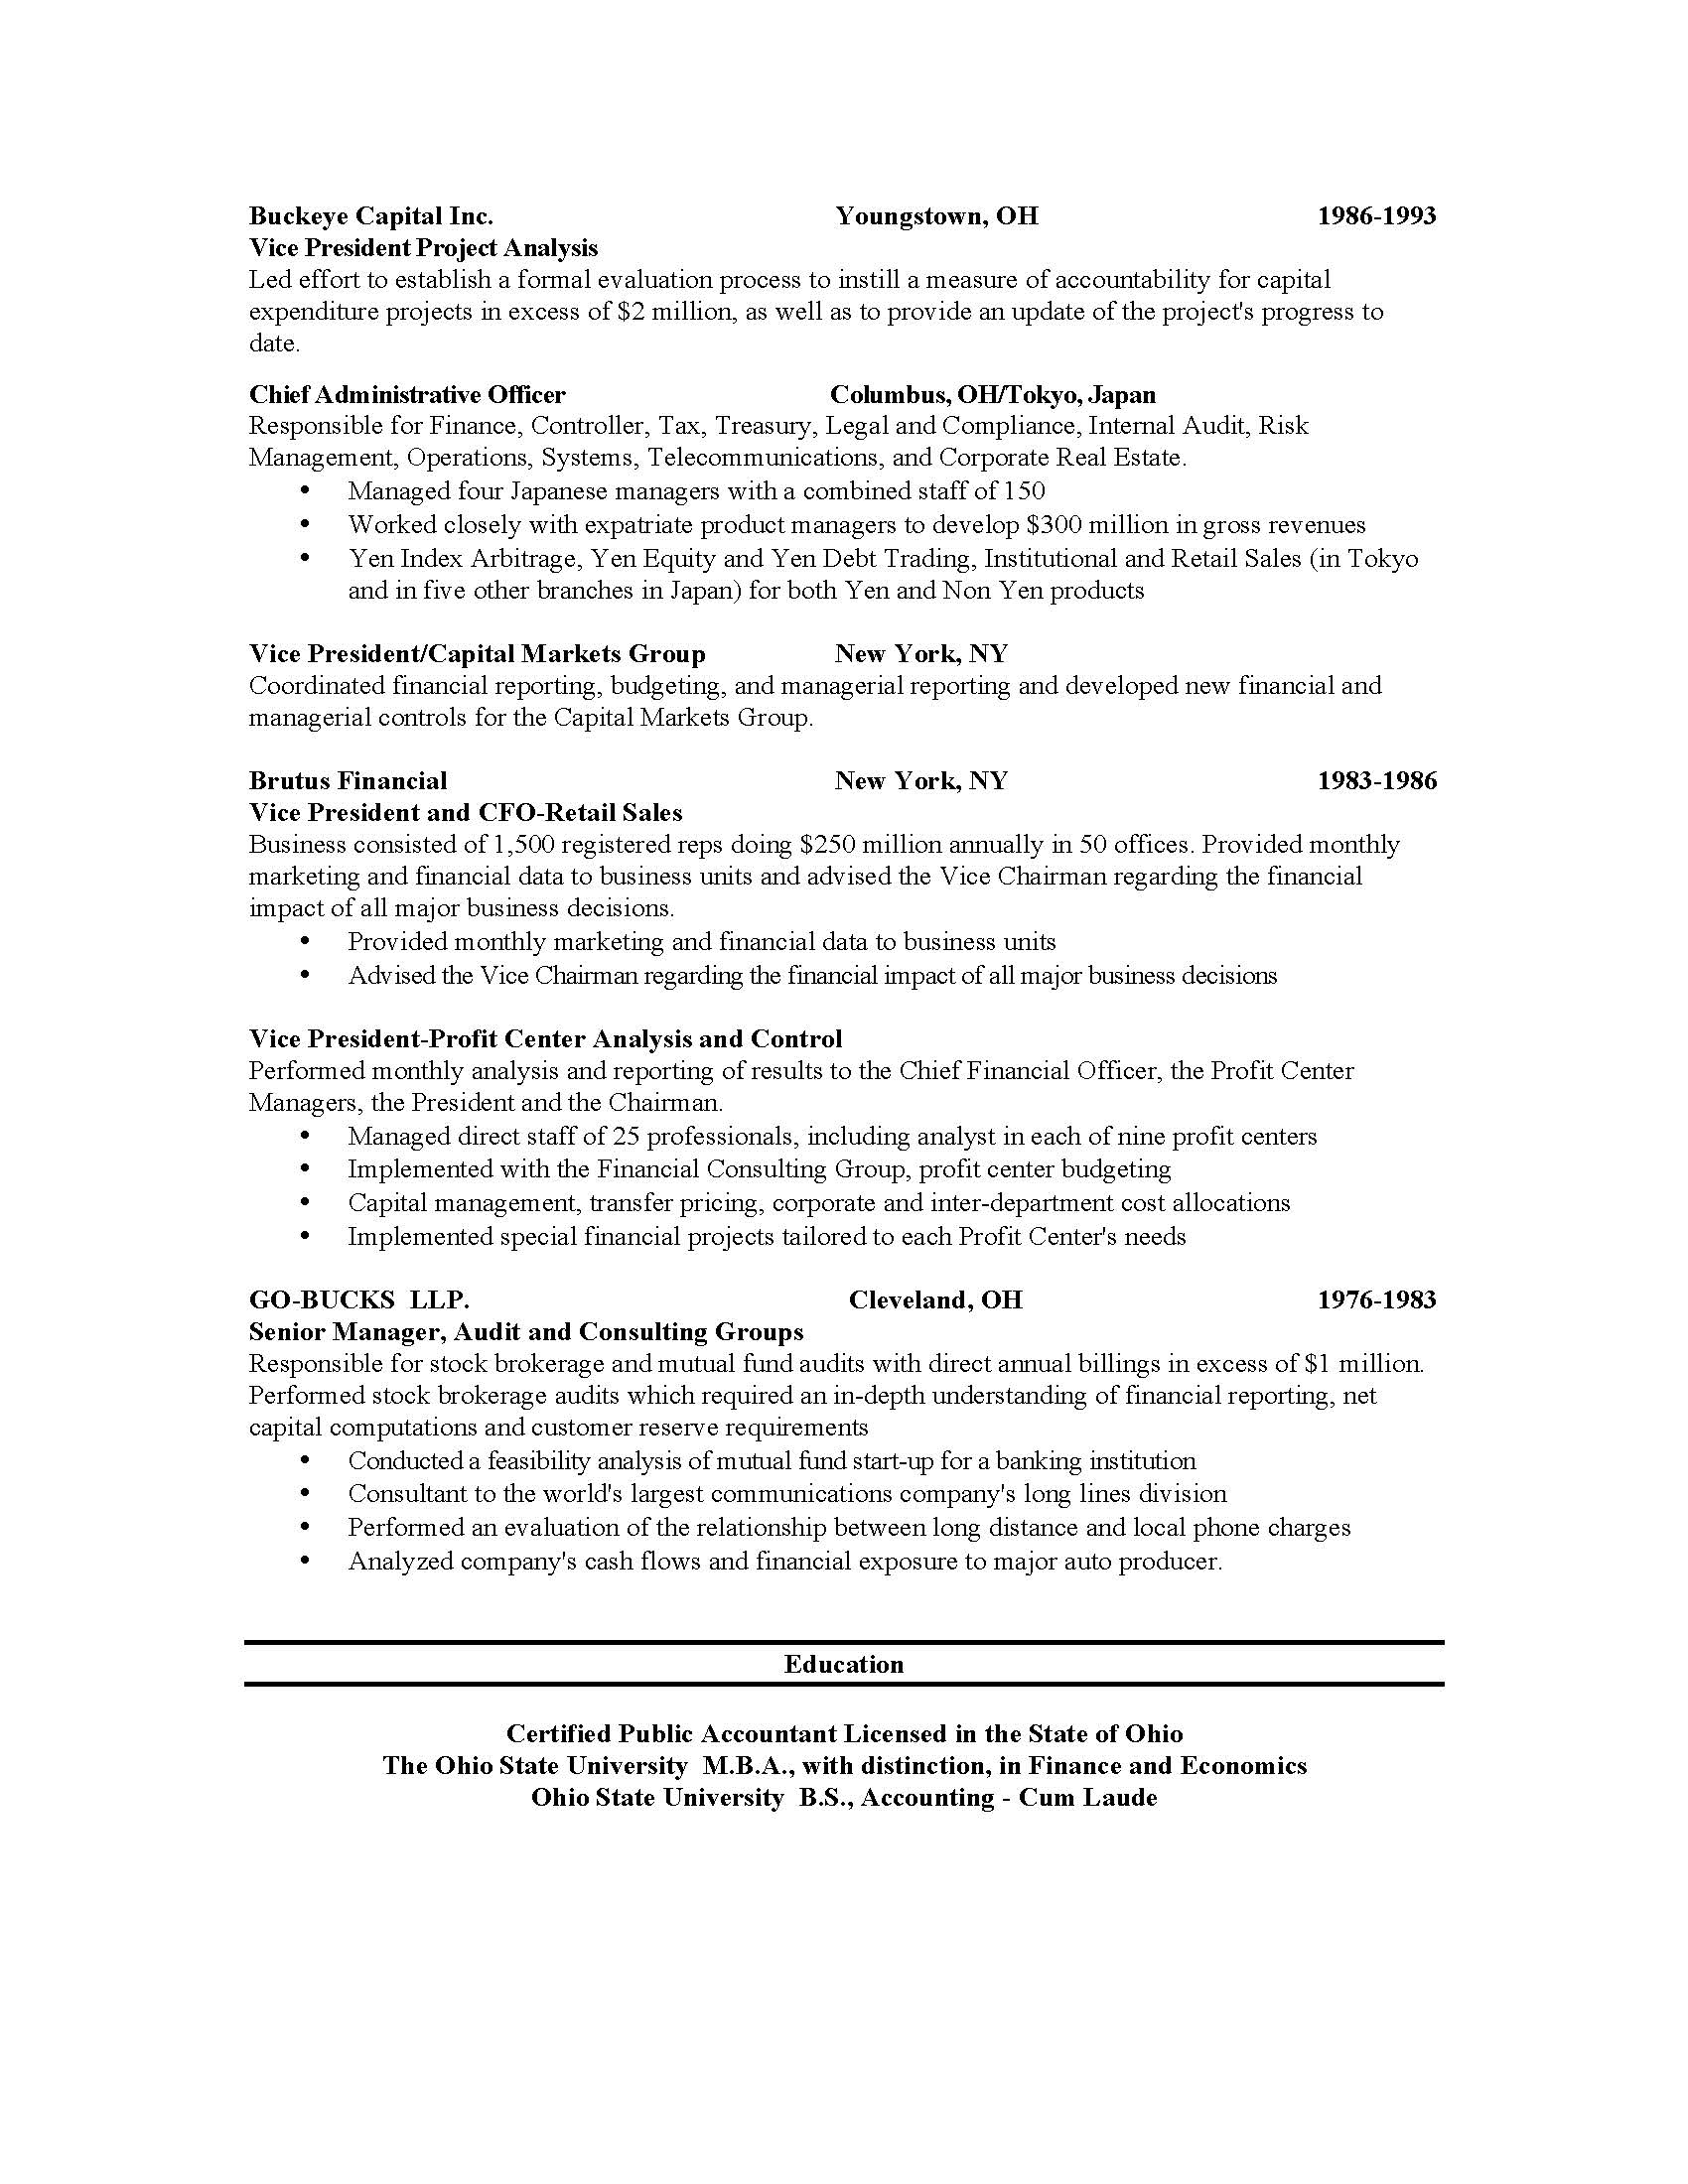 resumes and cover letters the ohio state university alumni chronological resume chronological resume2